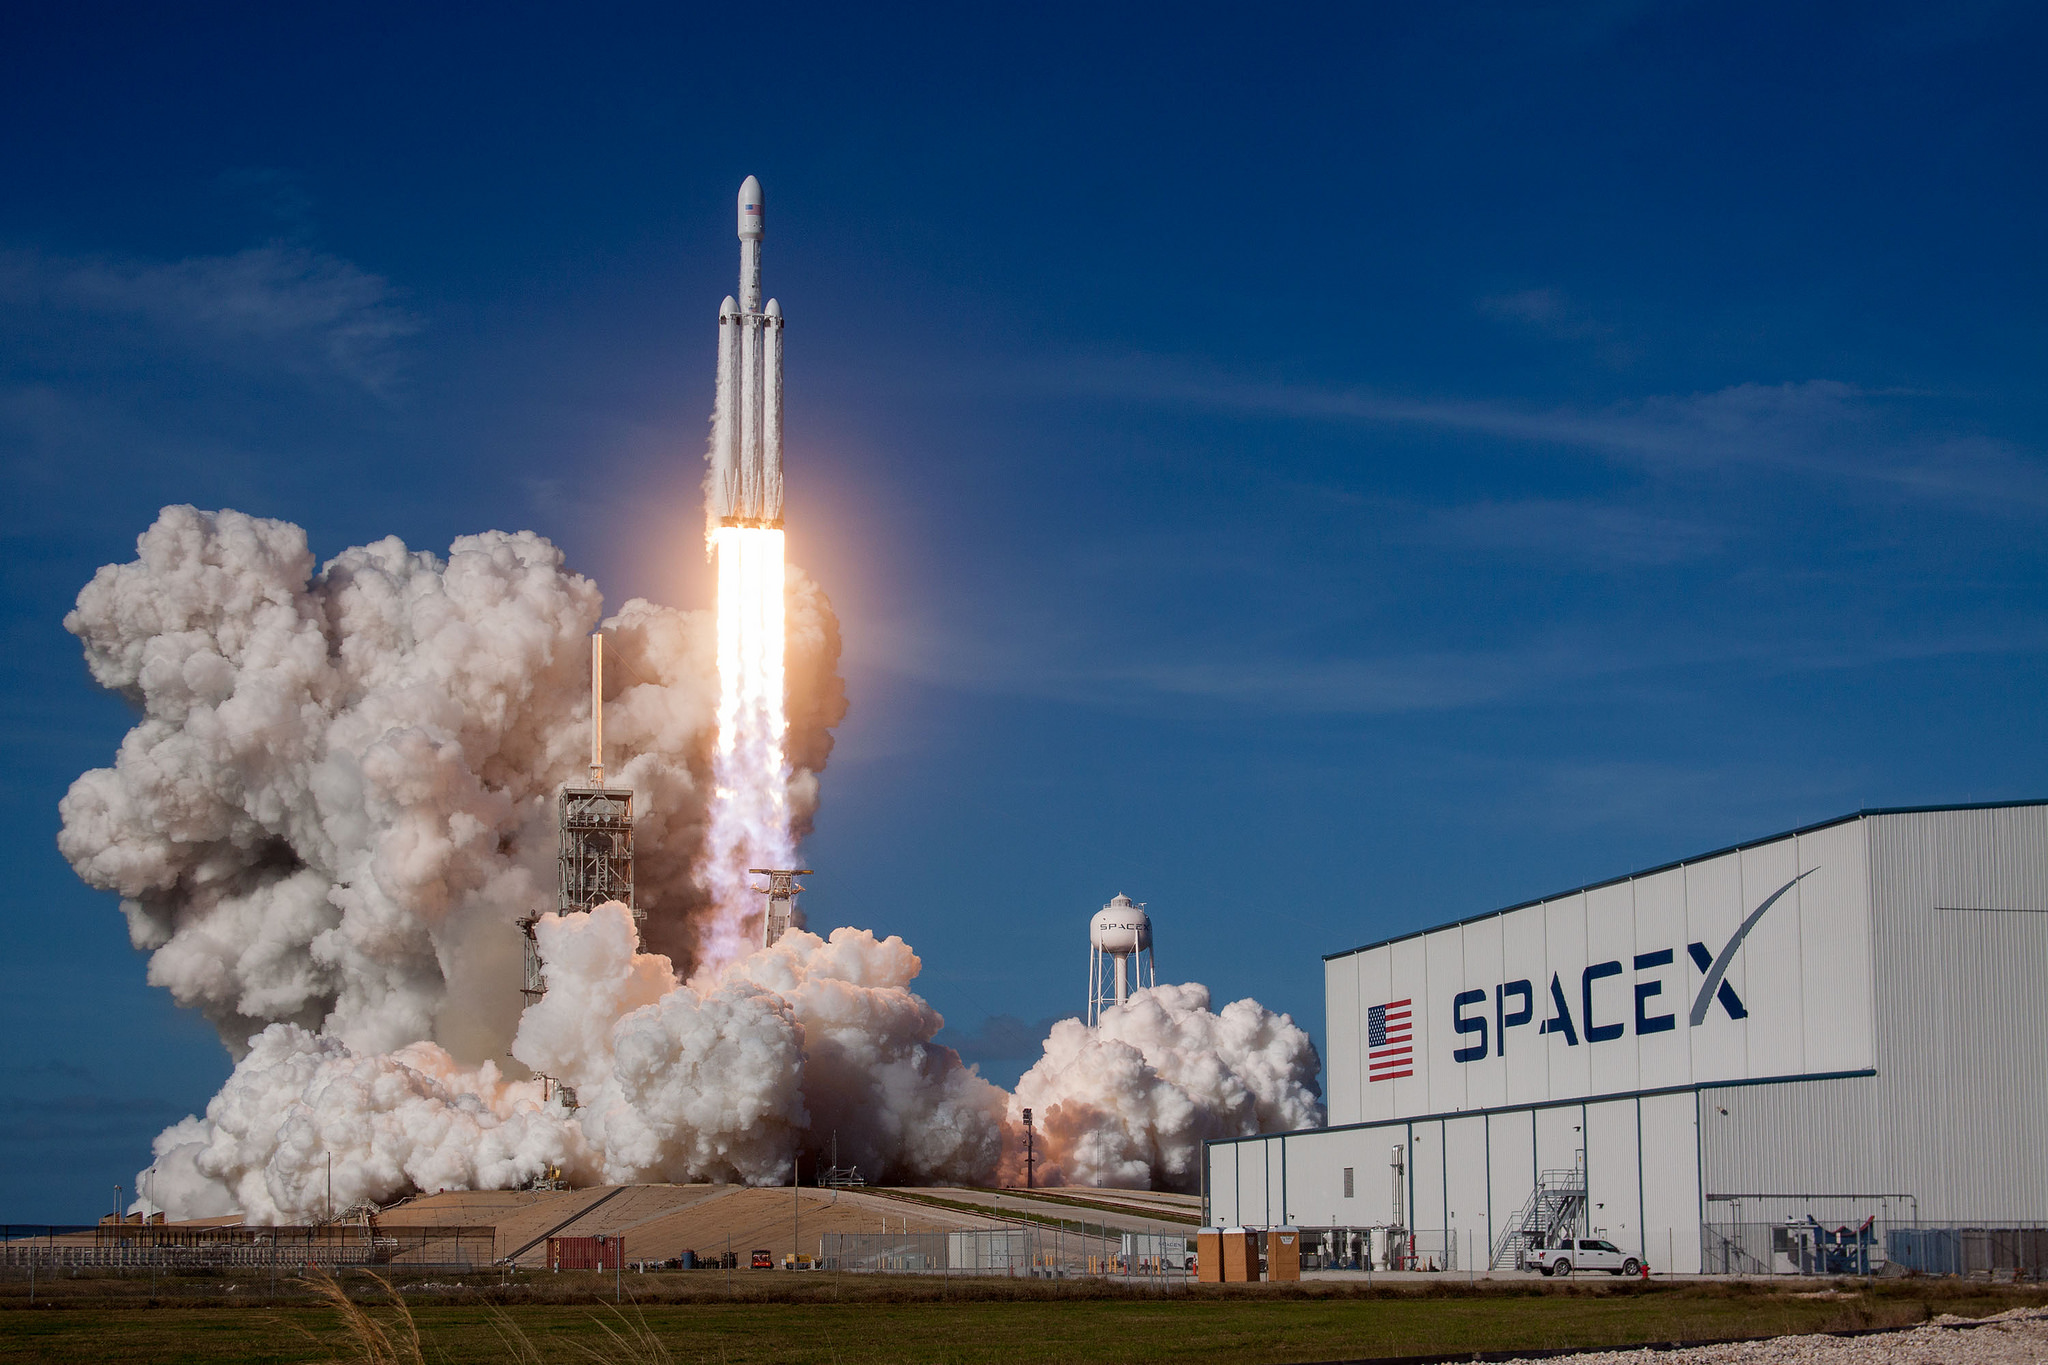 Falcon Heavy demo launch on Jan. 6 at Kennedy Space Center in Cape Canaveral, Florida.